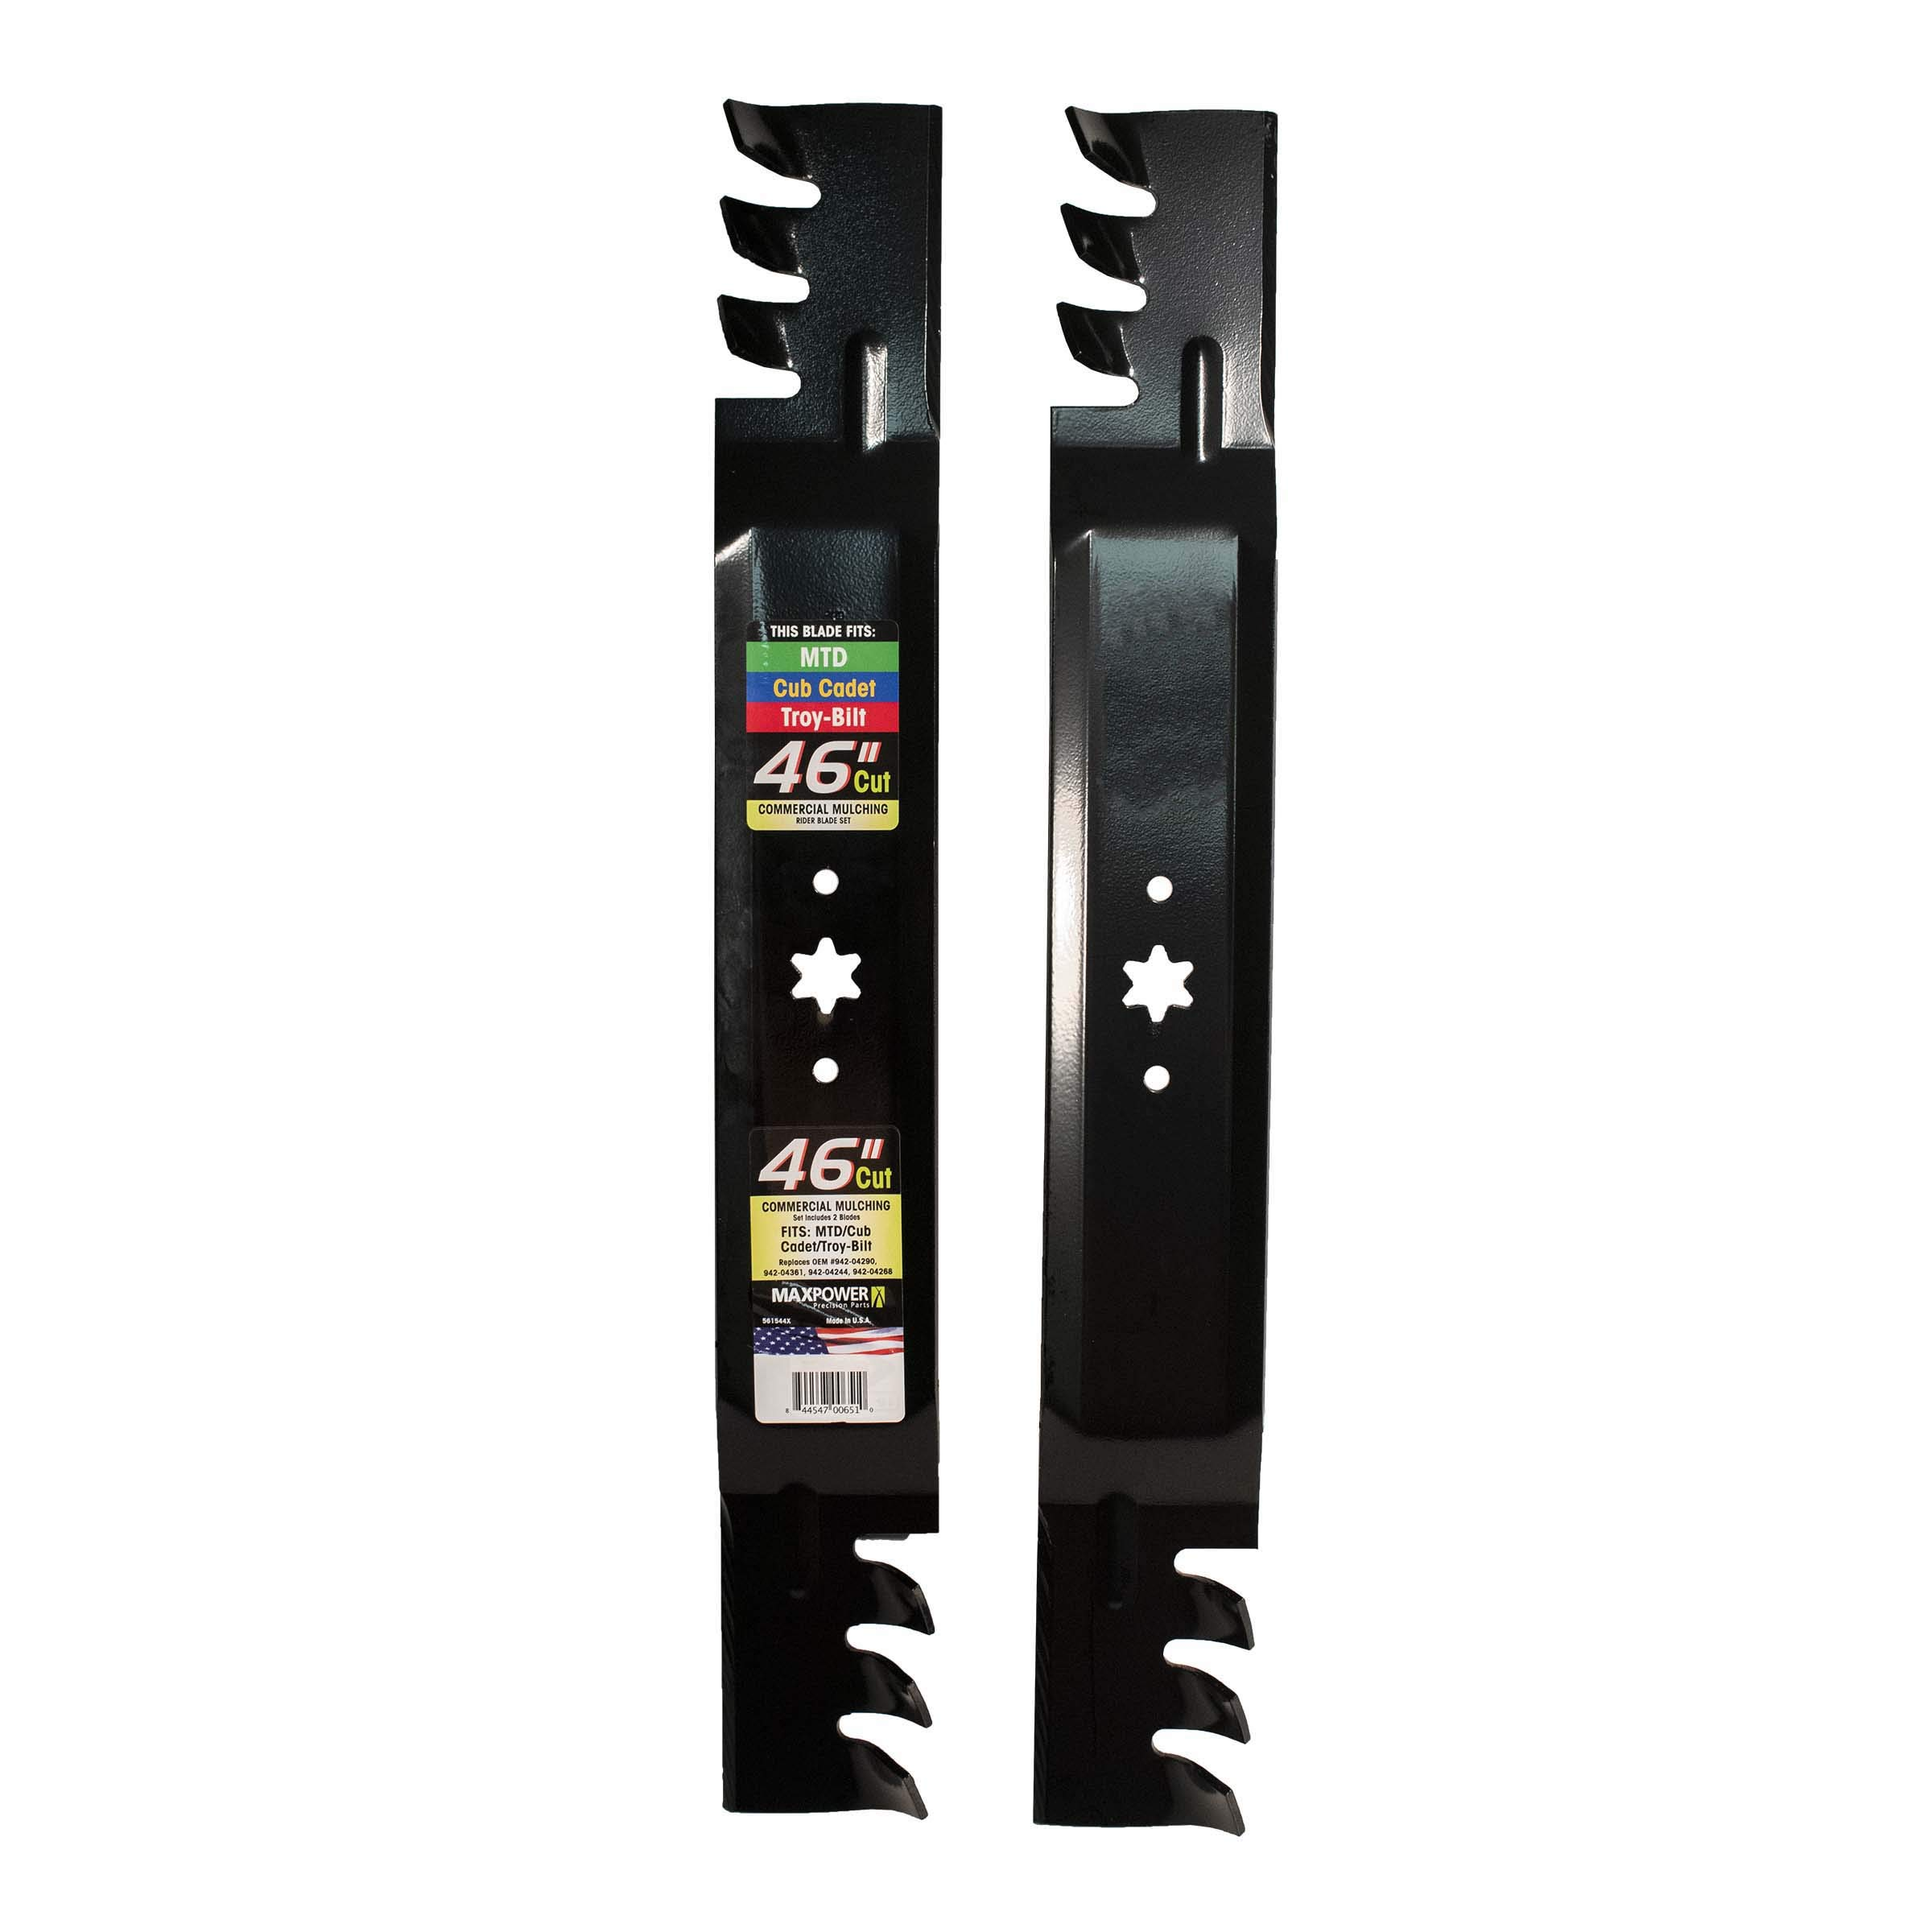 MaxPower 561544X Commercial Mulching Blade Set for 46'' Cut MTD/Cub Cadet/Troy-Bilt Replaces OEM No. 942-04290, 942-04361, 942-04244, 942-04268 and Others